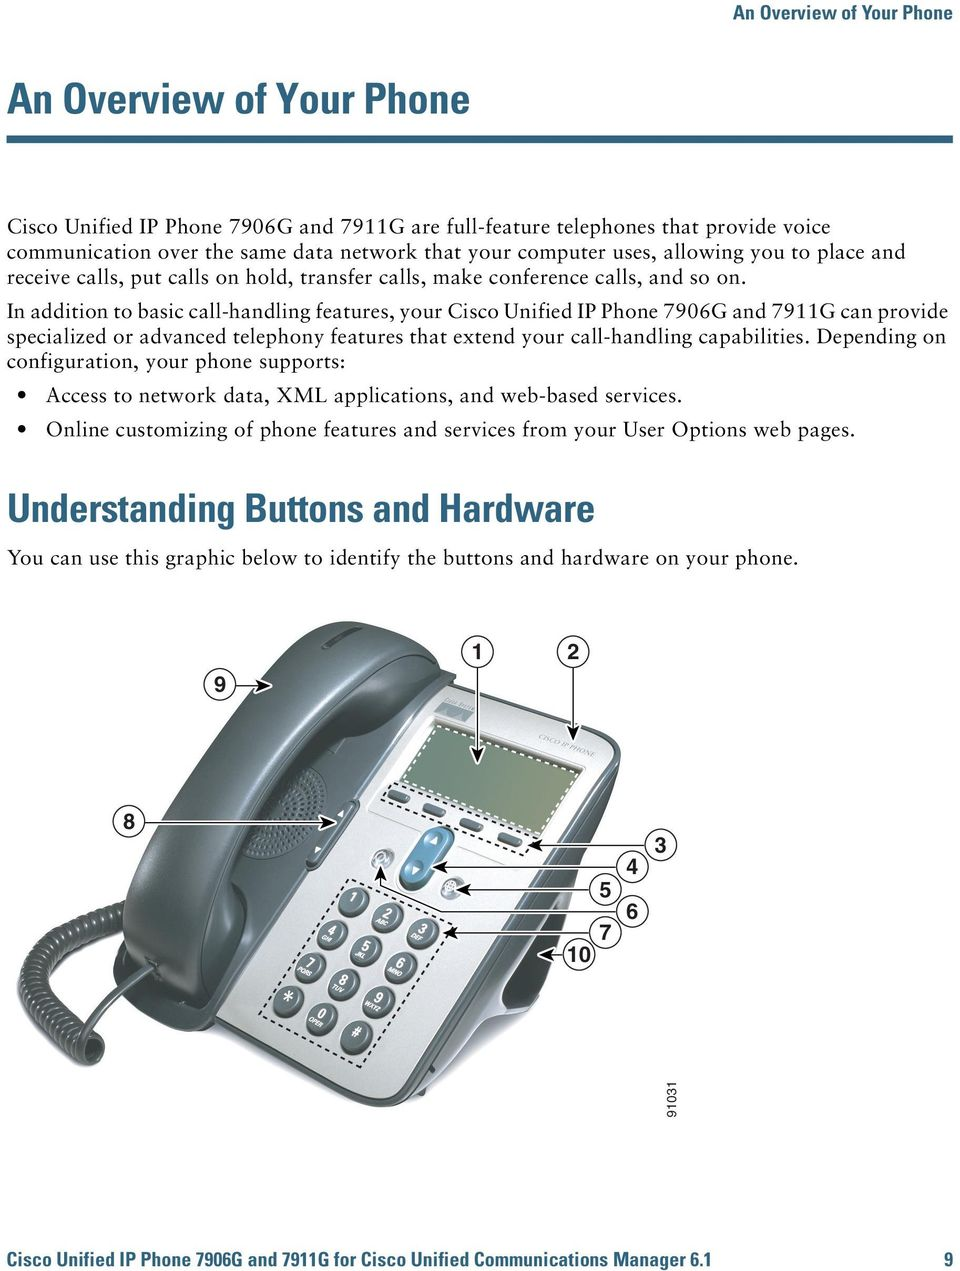 In addition to basic call-handling features, your Cisco Unified IP Phone 7906G and 7911G can provide specialized or advanced telephony features that extend your call-handling capabilities.